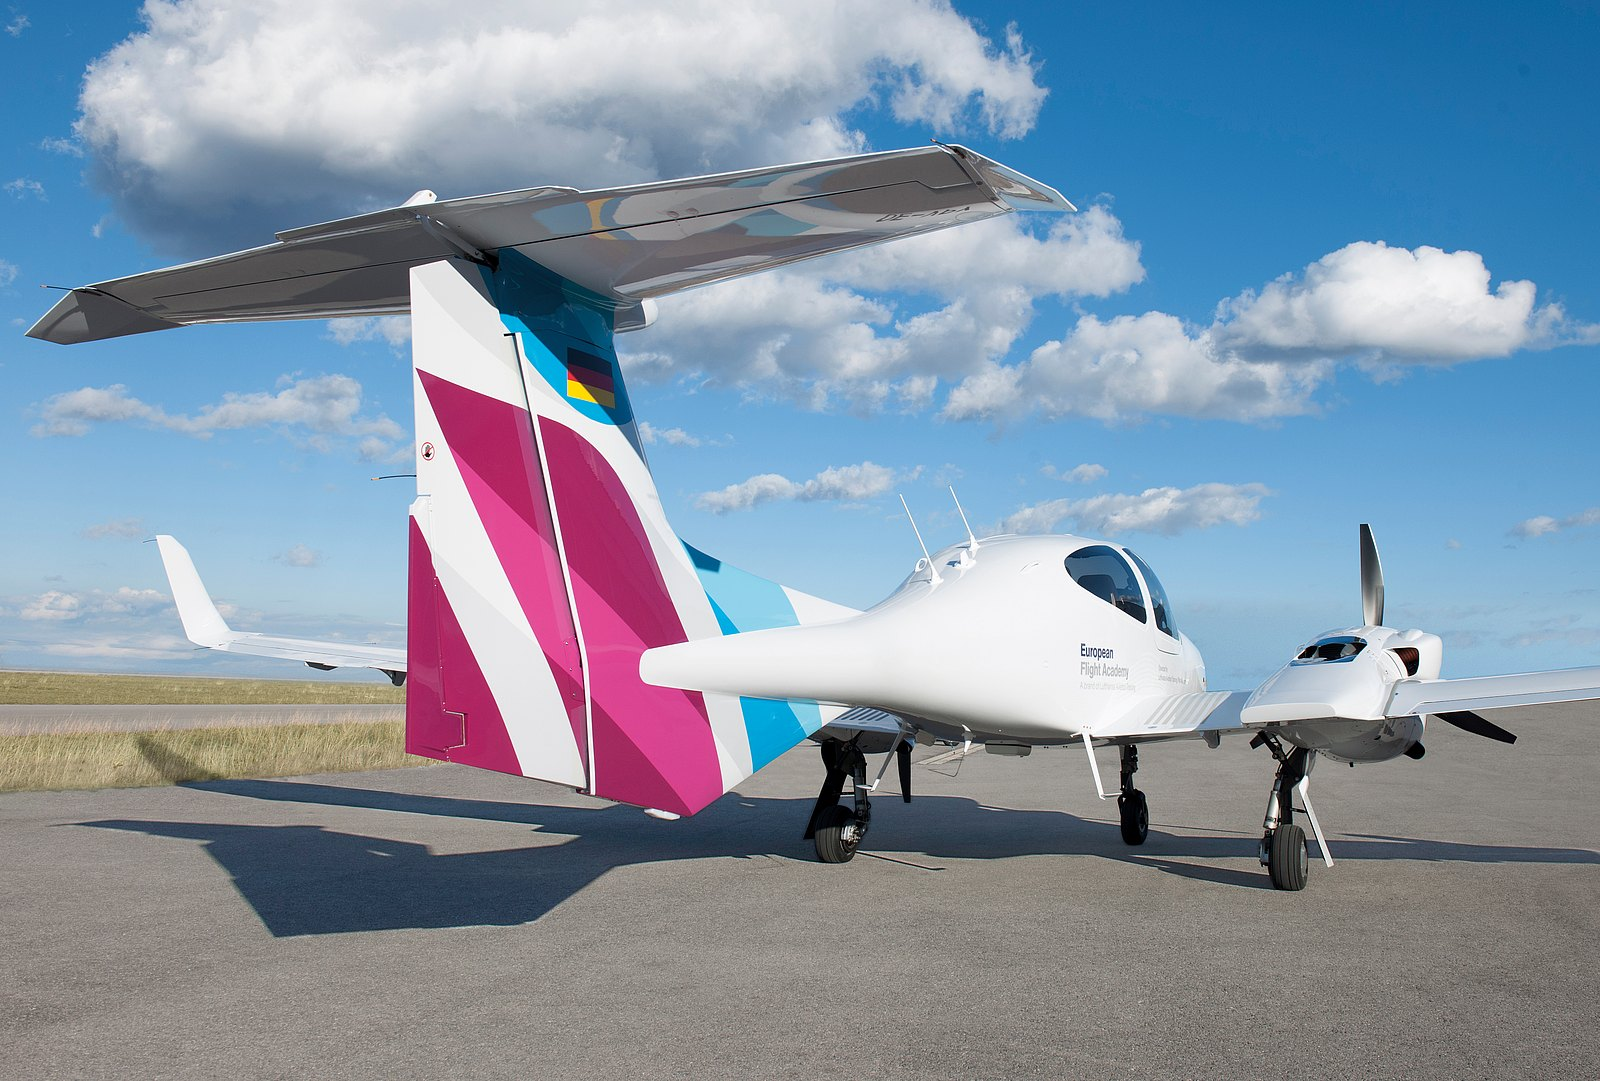 DA42 – The definition of perfection - Diamond Aircraft Industries